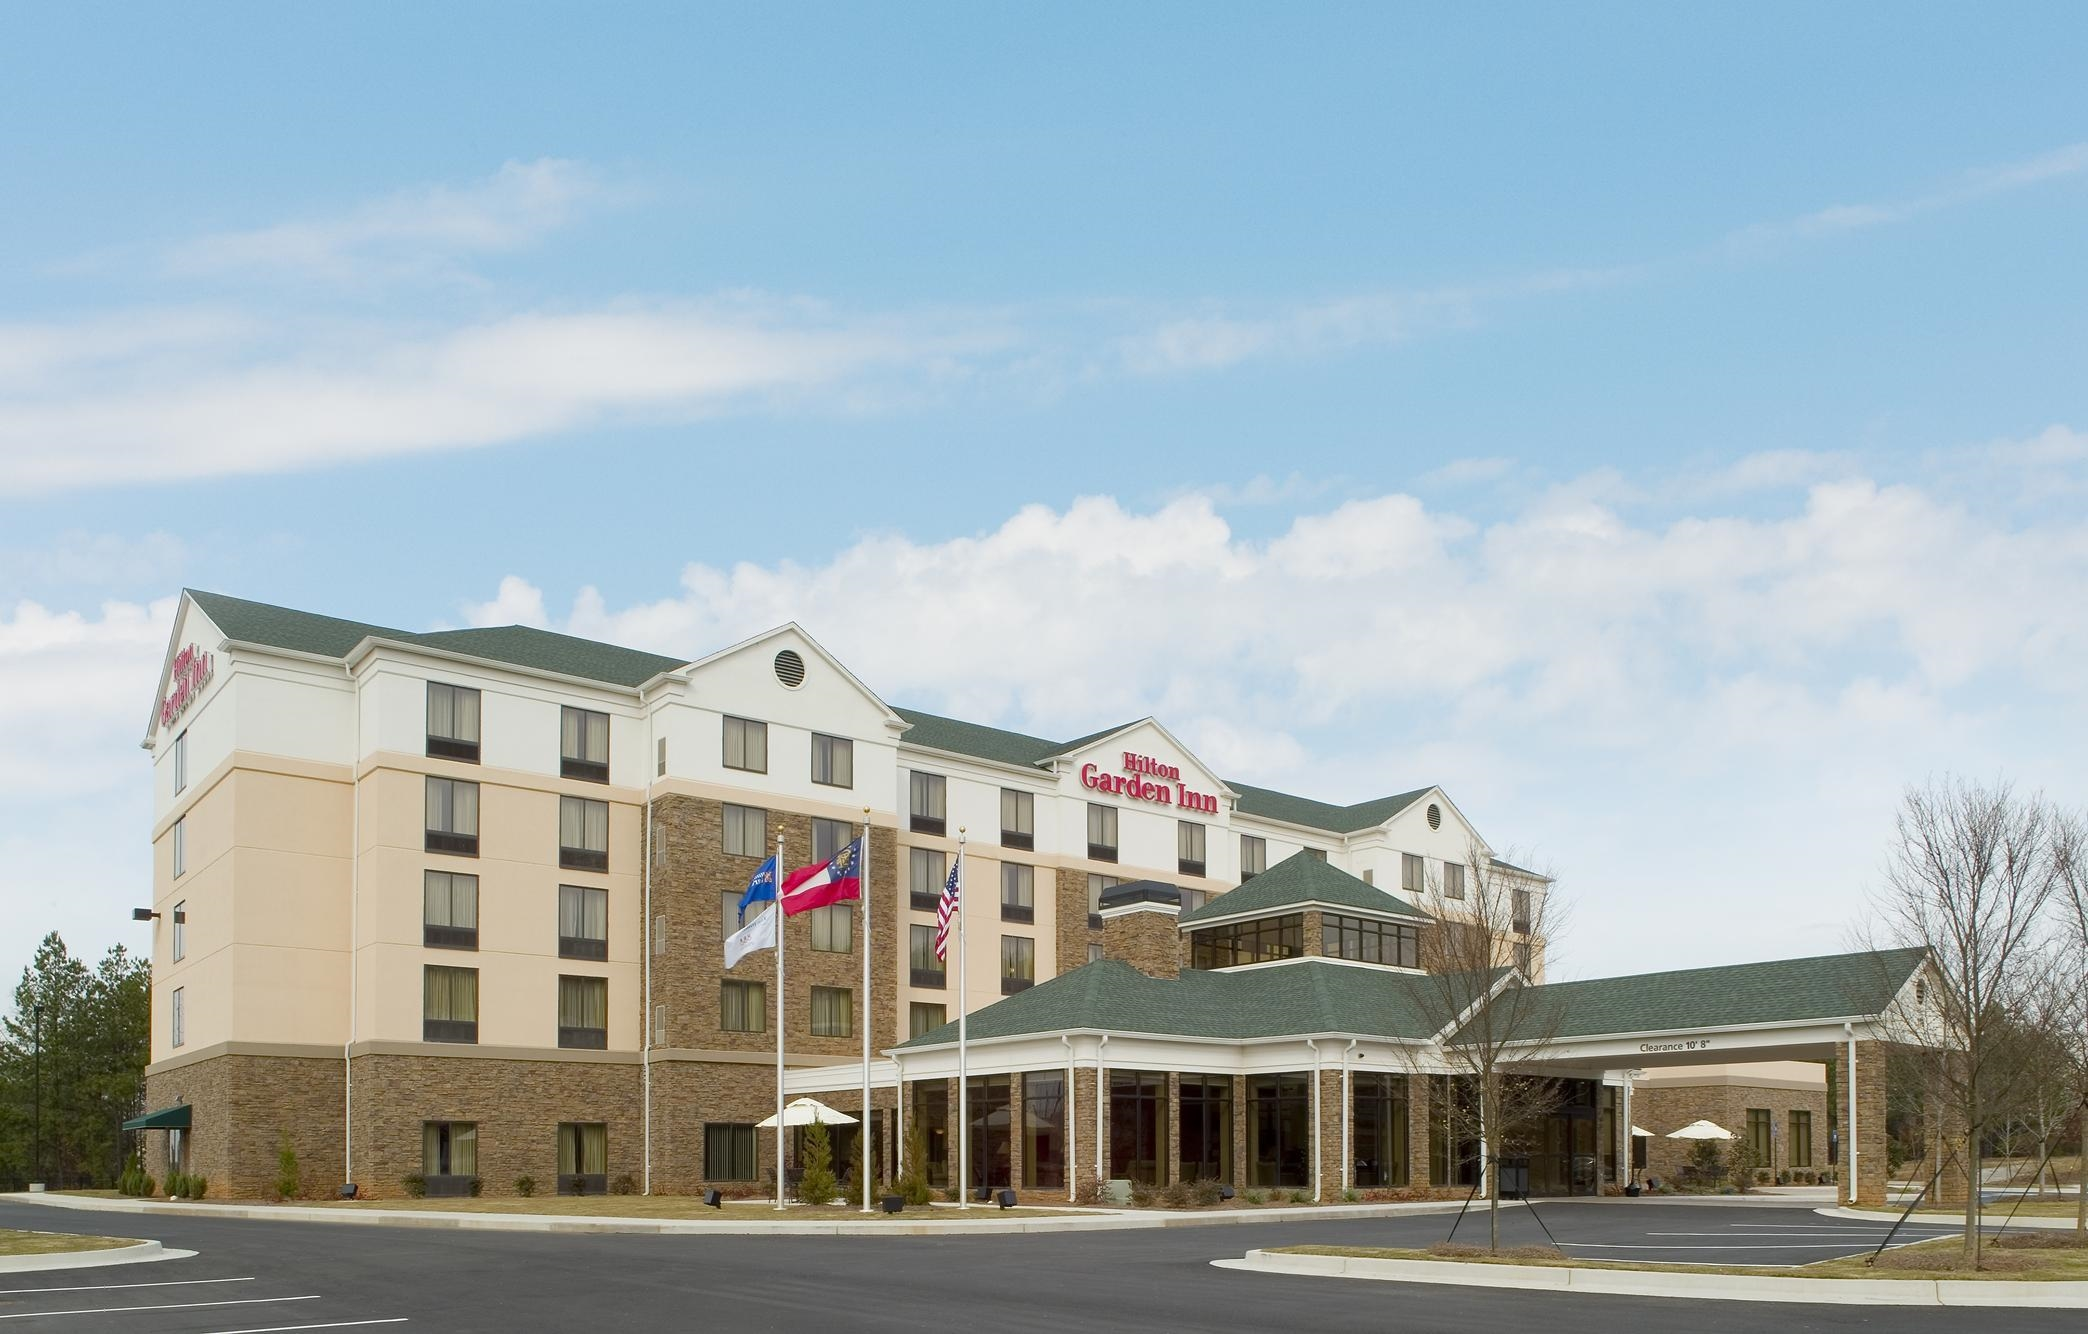 Hilton garden inn atlanta west lithia springs at 110 - Hilton garden inn lithia springs ...